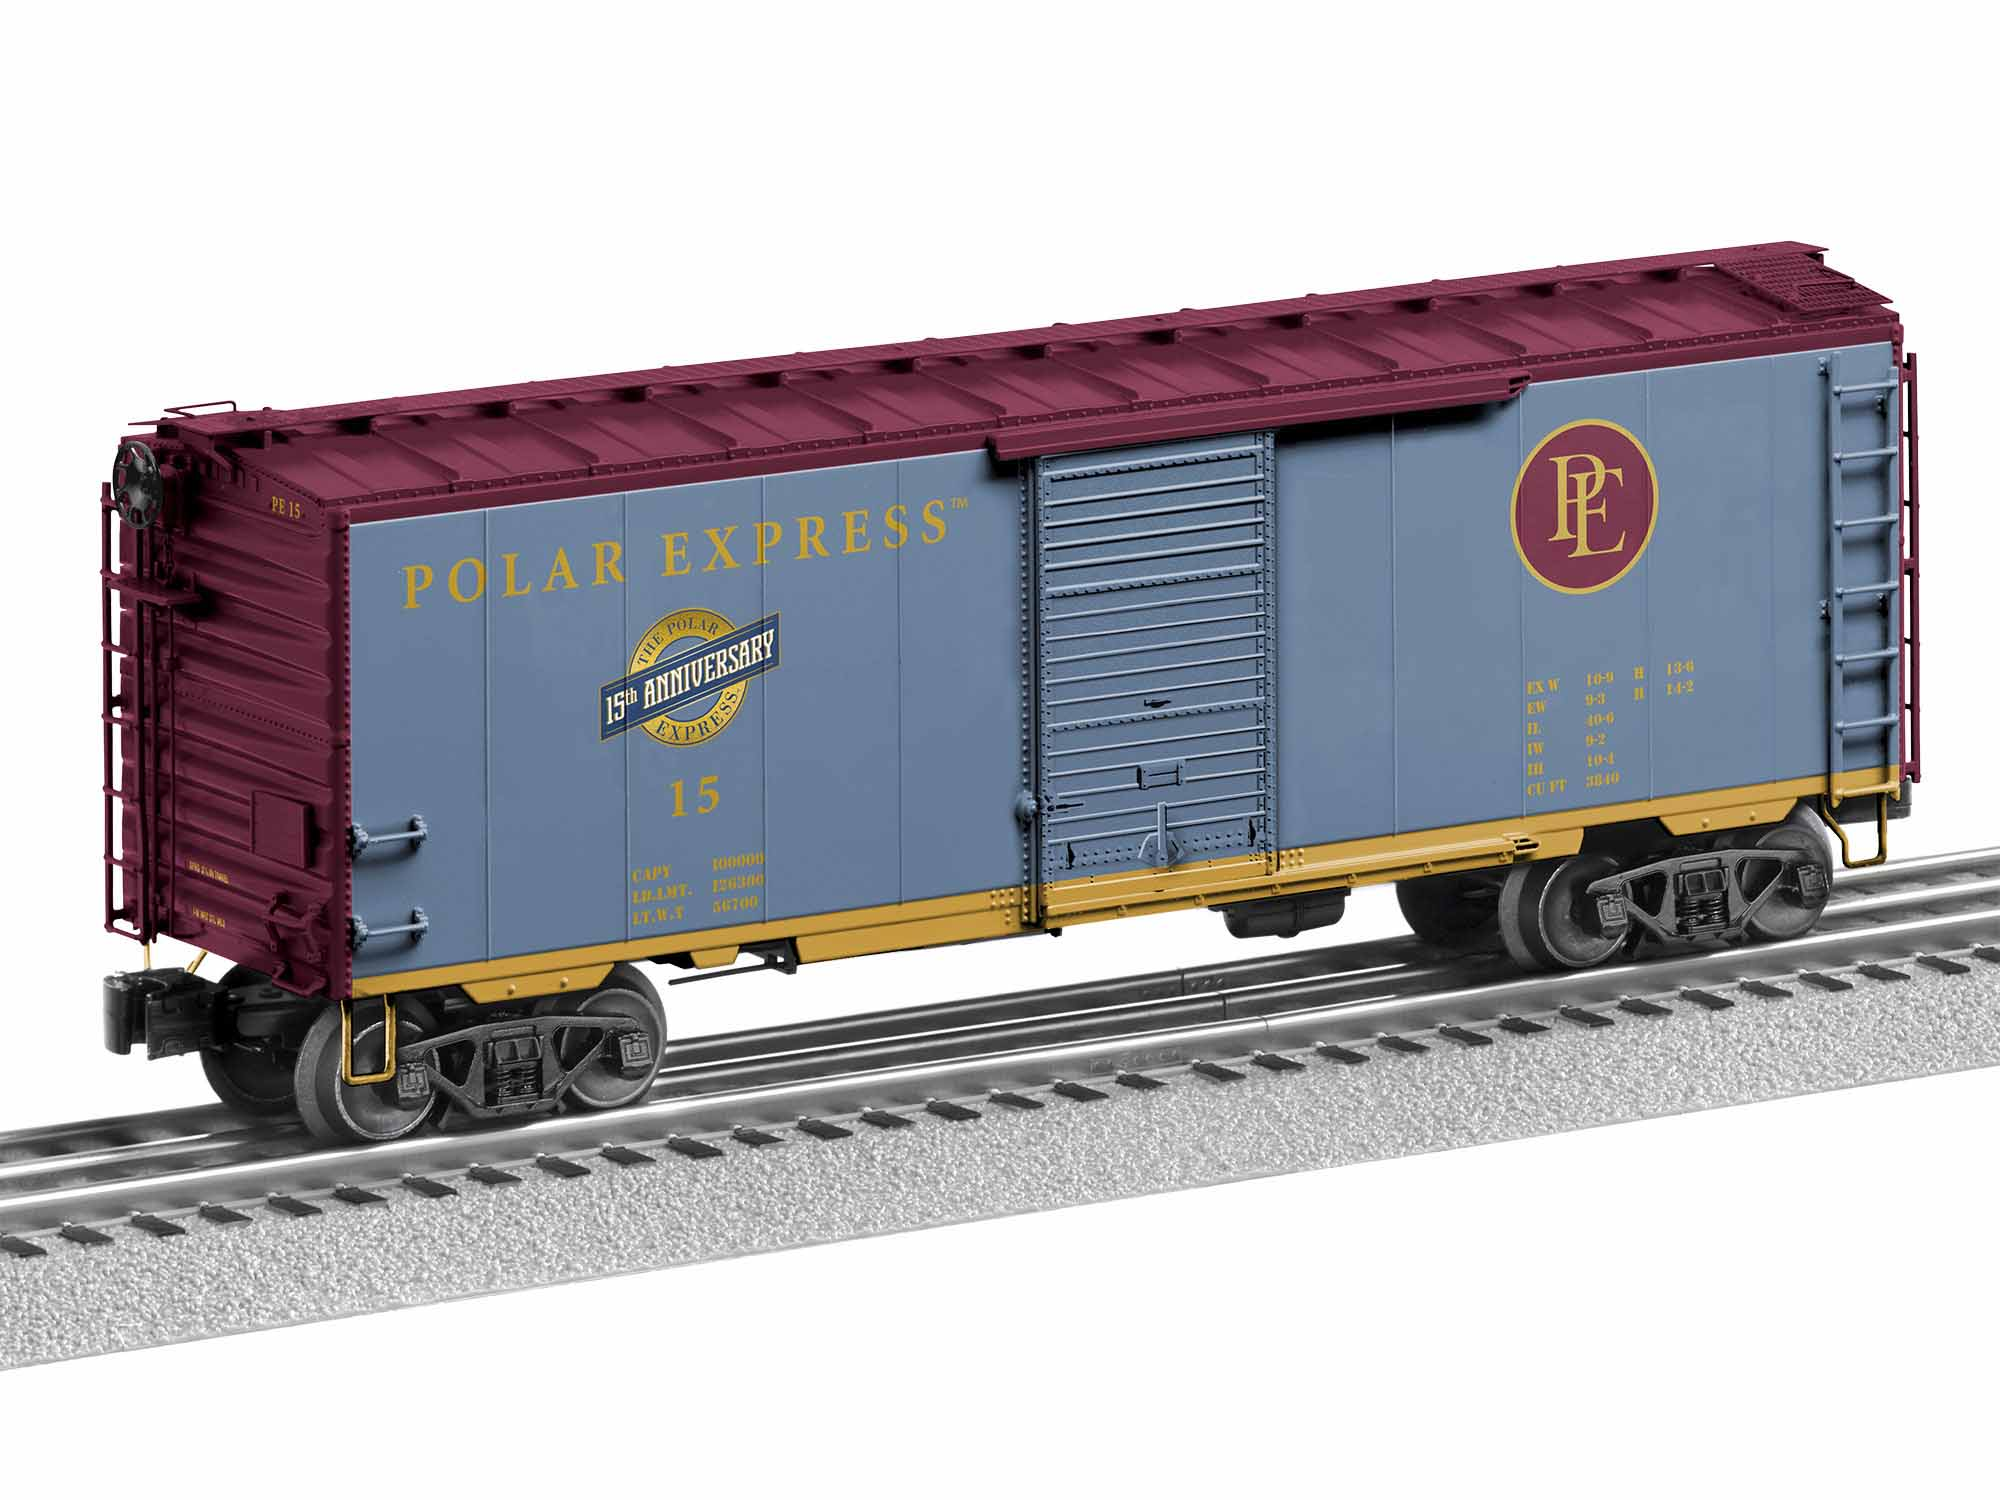 Lionel 1926820 O PS-1 40' Boxcar w/ FreightSounds 3-Rail Polar Express 15 15th Anniversary Scheme 434-1926820